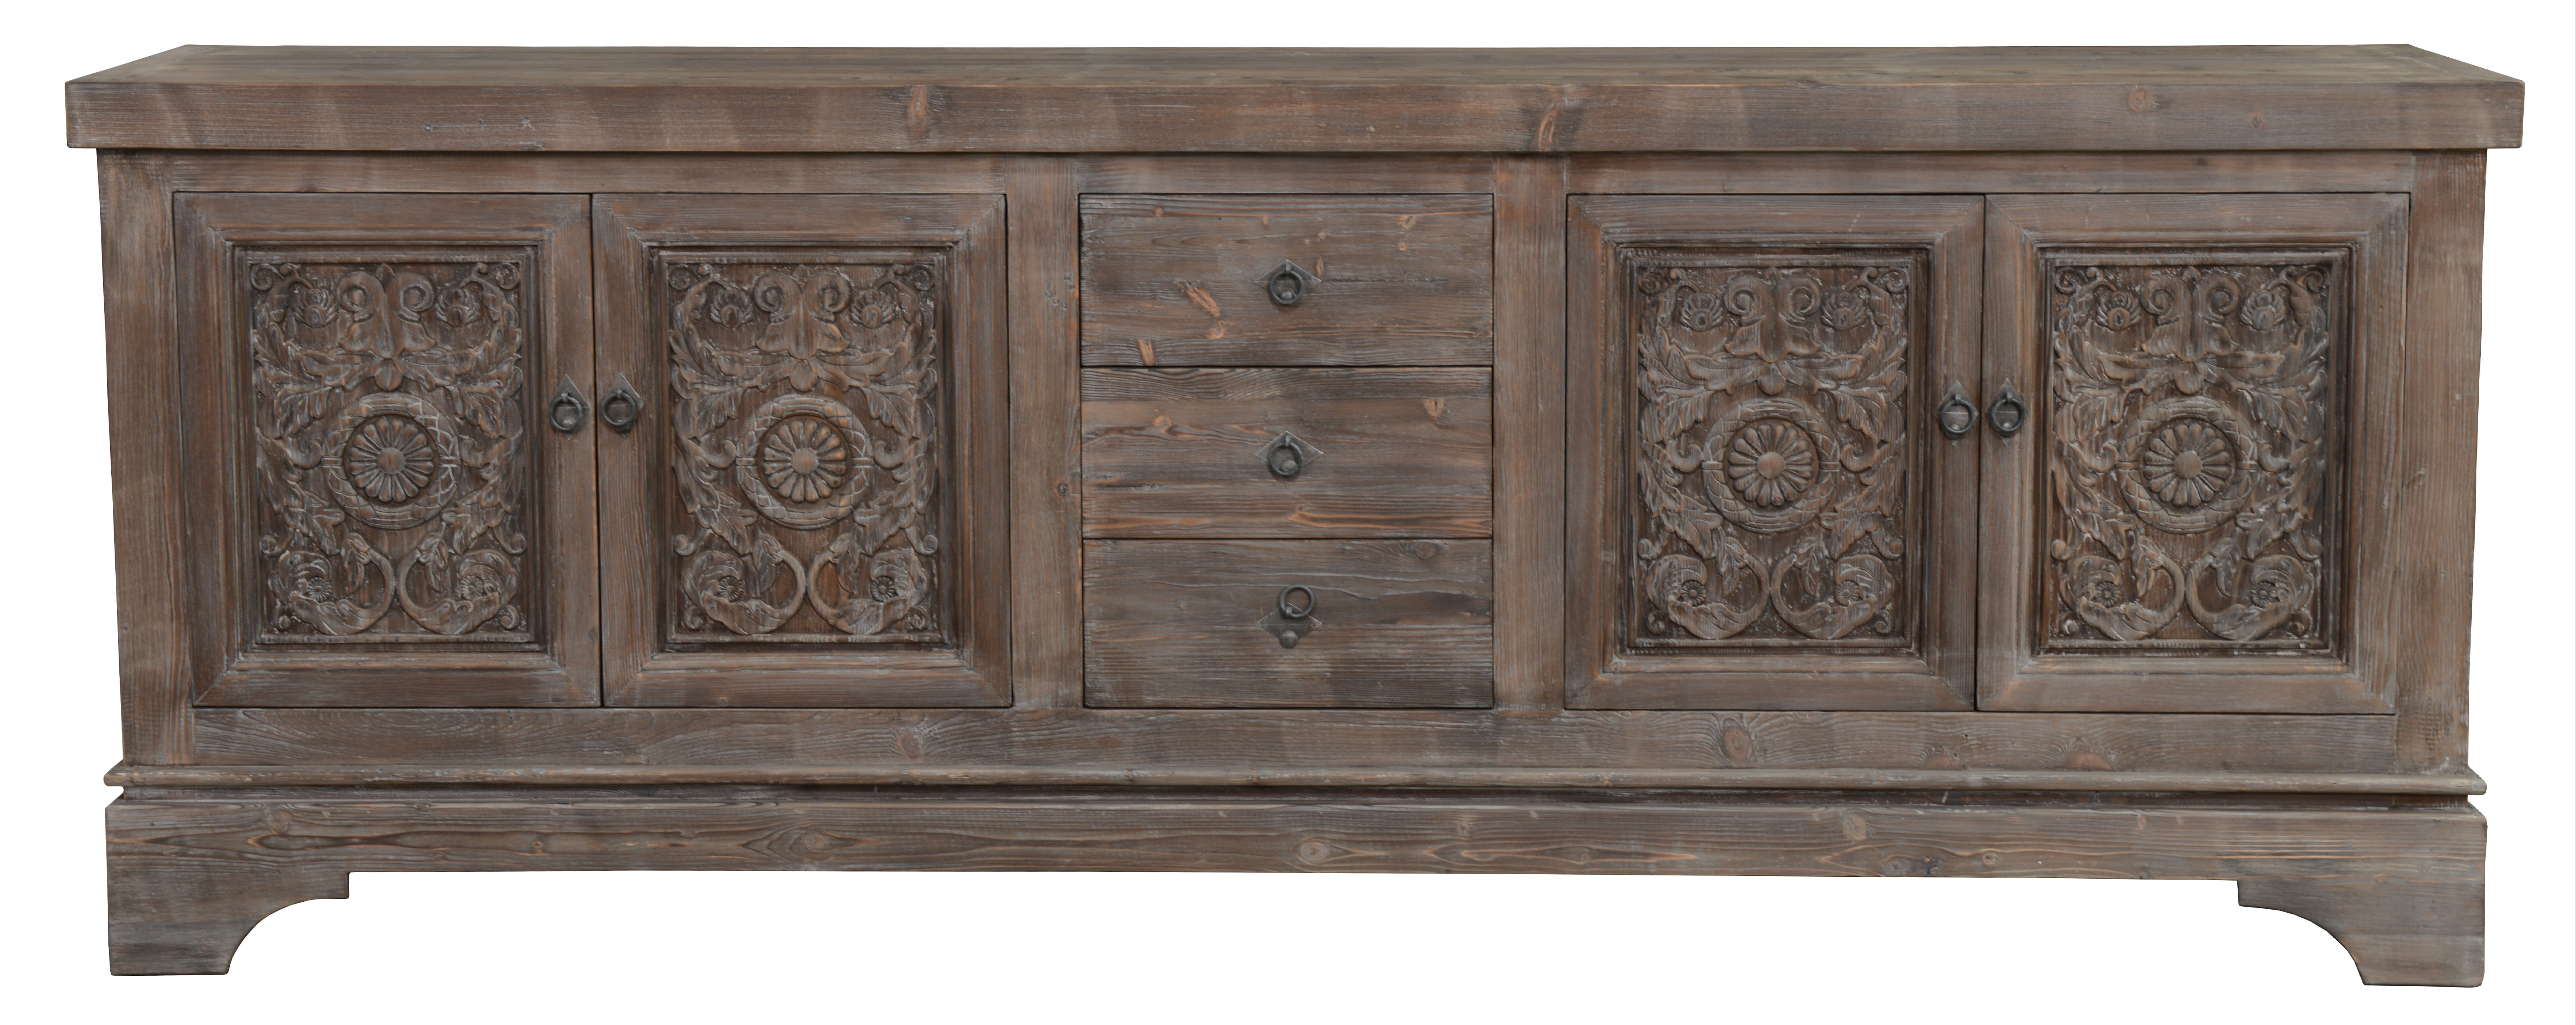 Farmhouse & Rustic Sideboards & Buffets | Birch Lane With Sayles Sideboards (View 17 of 20)